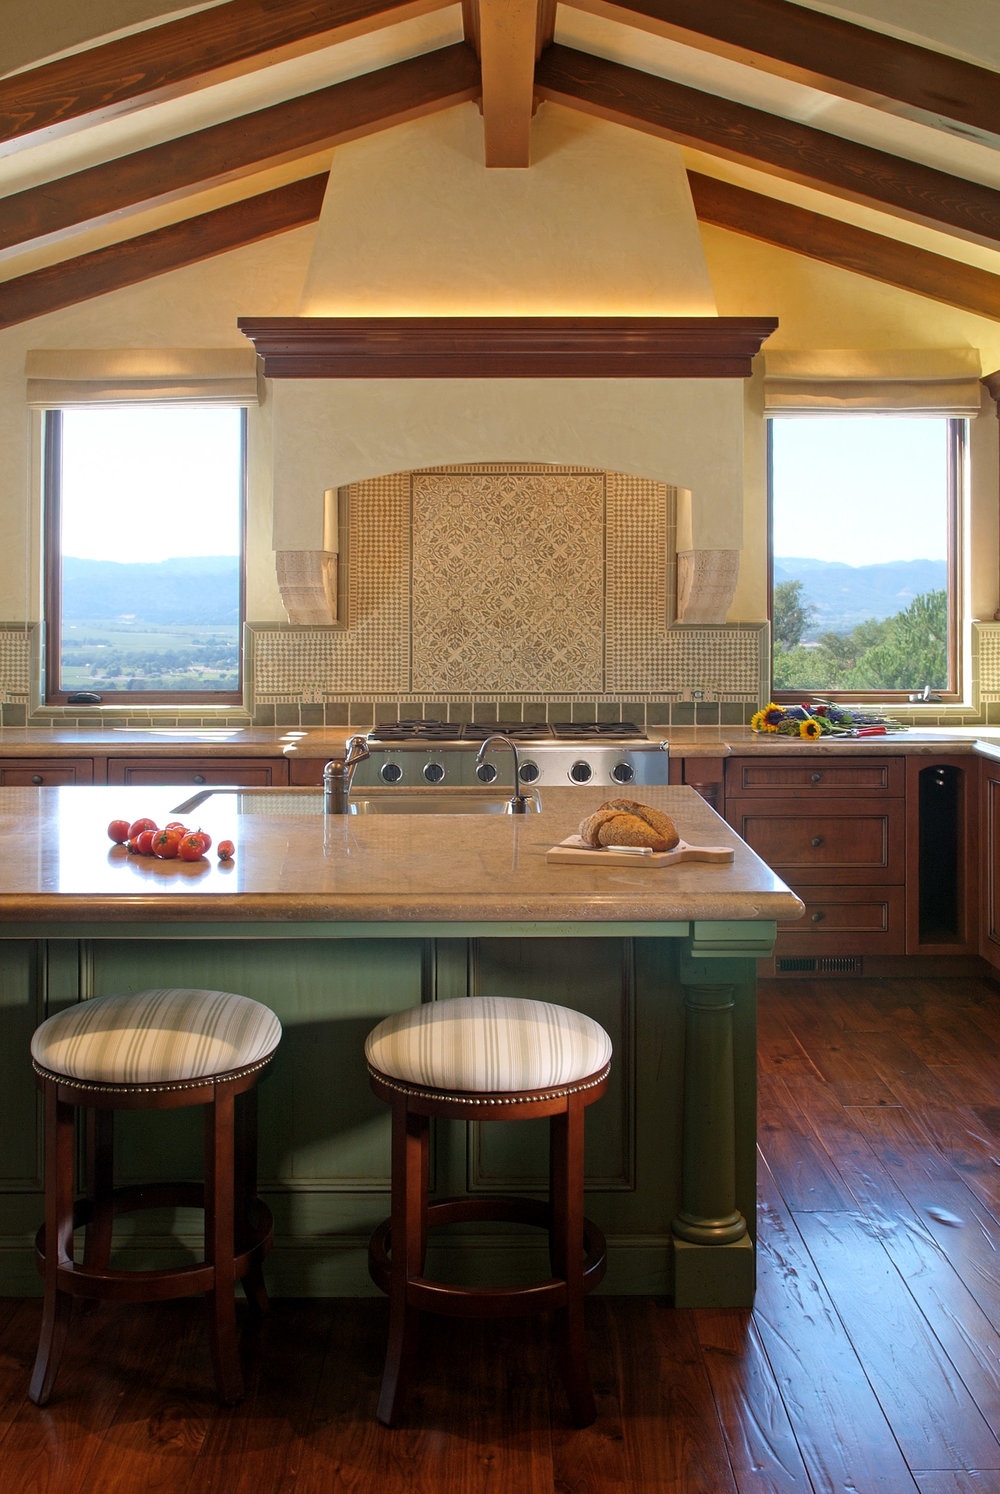 Napa_Valley_Italian_Villa_kitchen_02.jpg